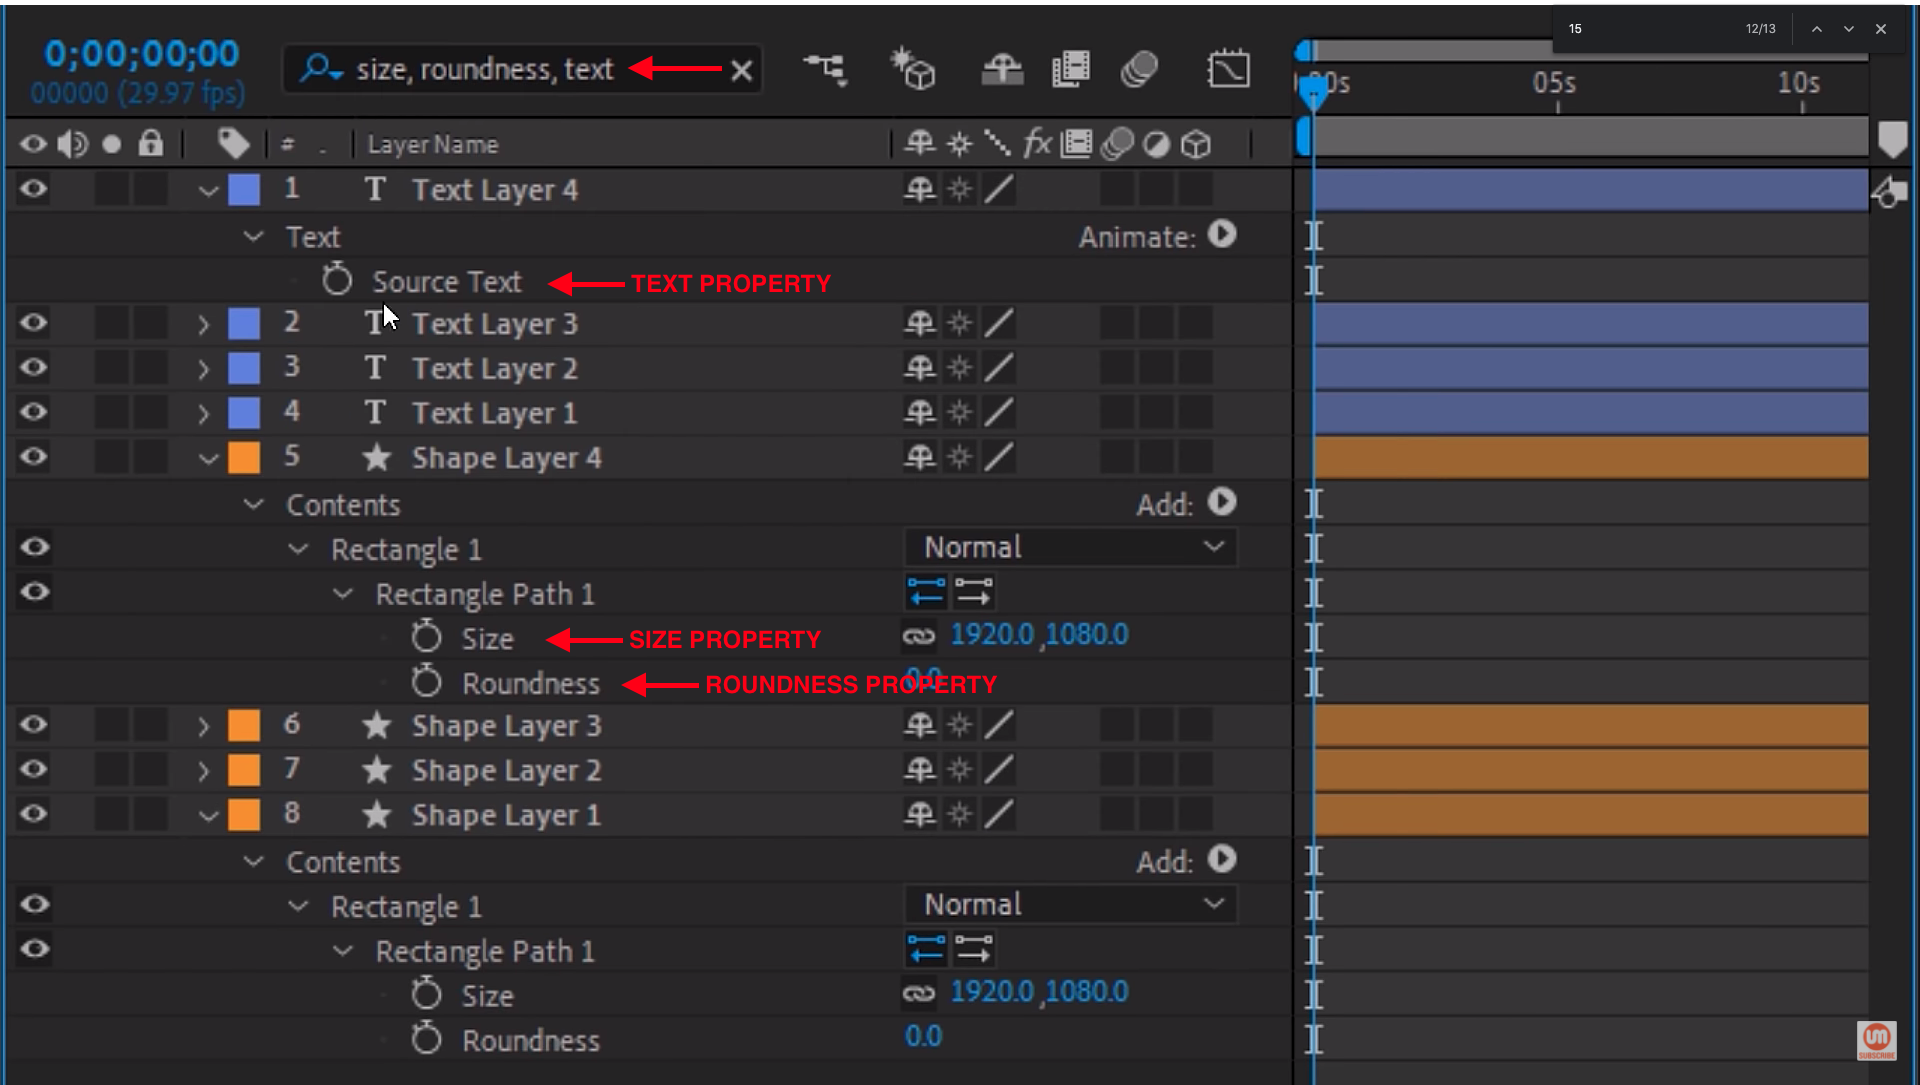 Searching for multiple properties in adobe after effects